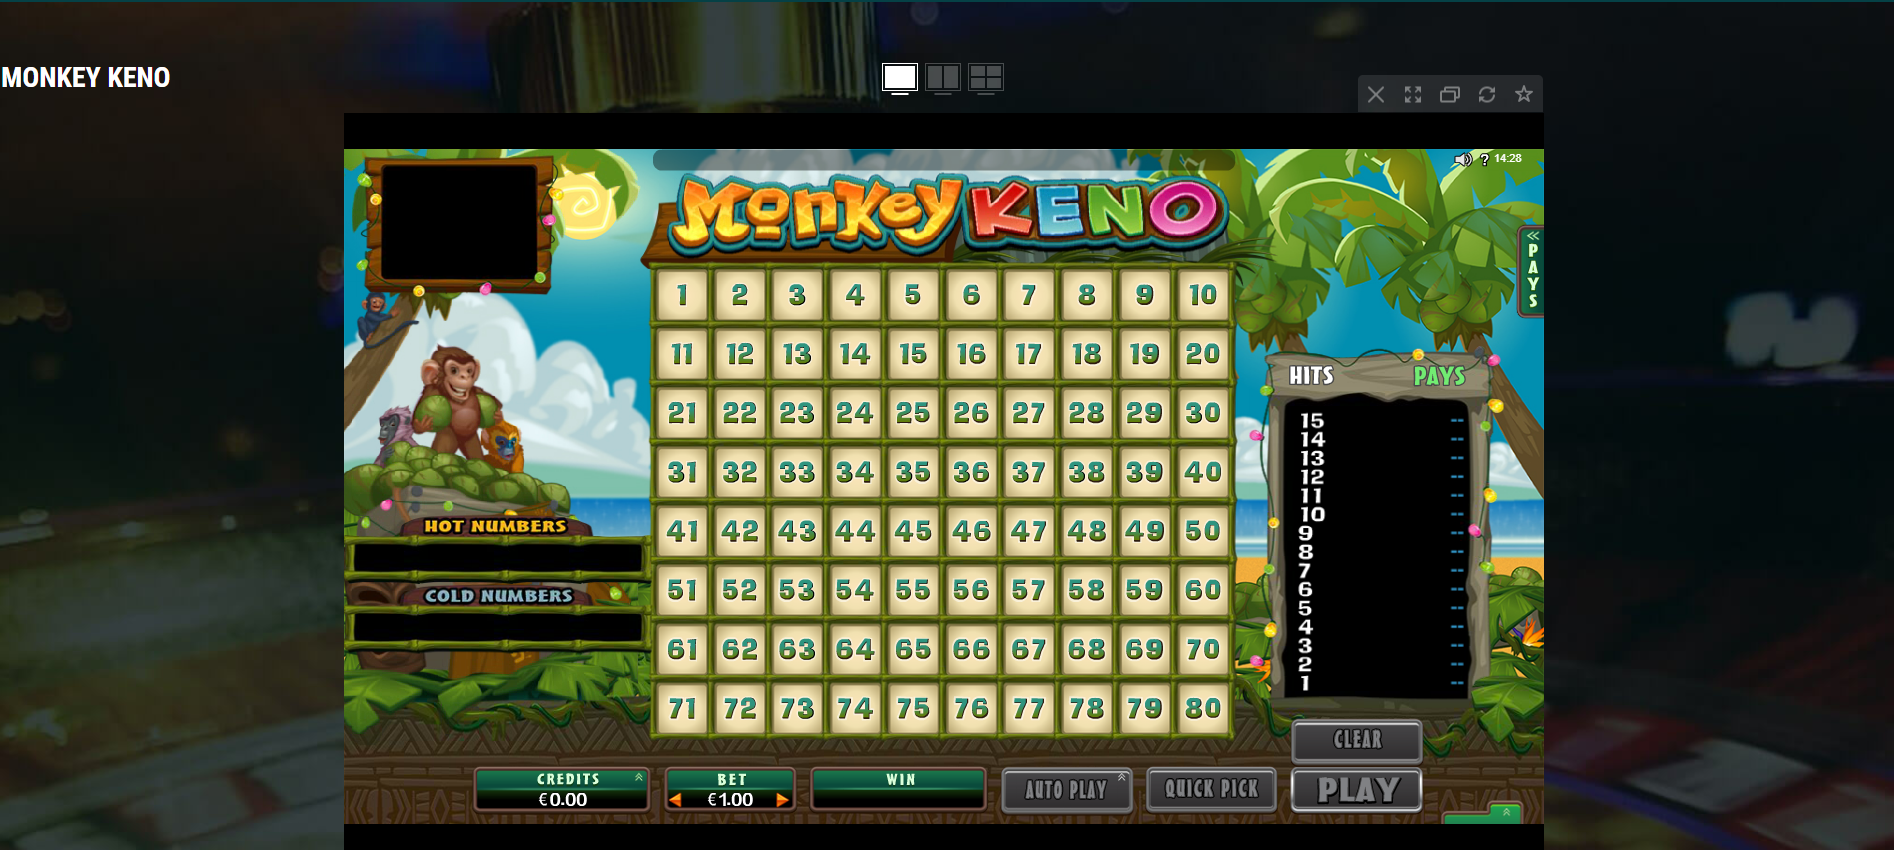 keno casino games - monkey keno casino game